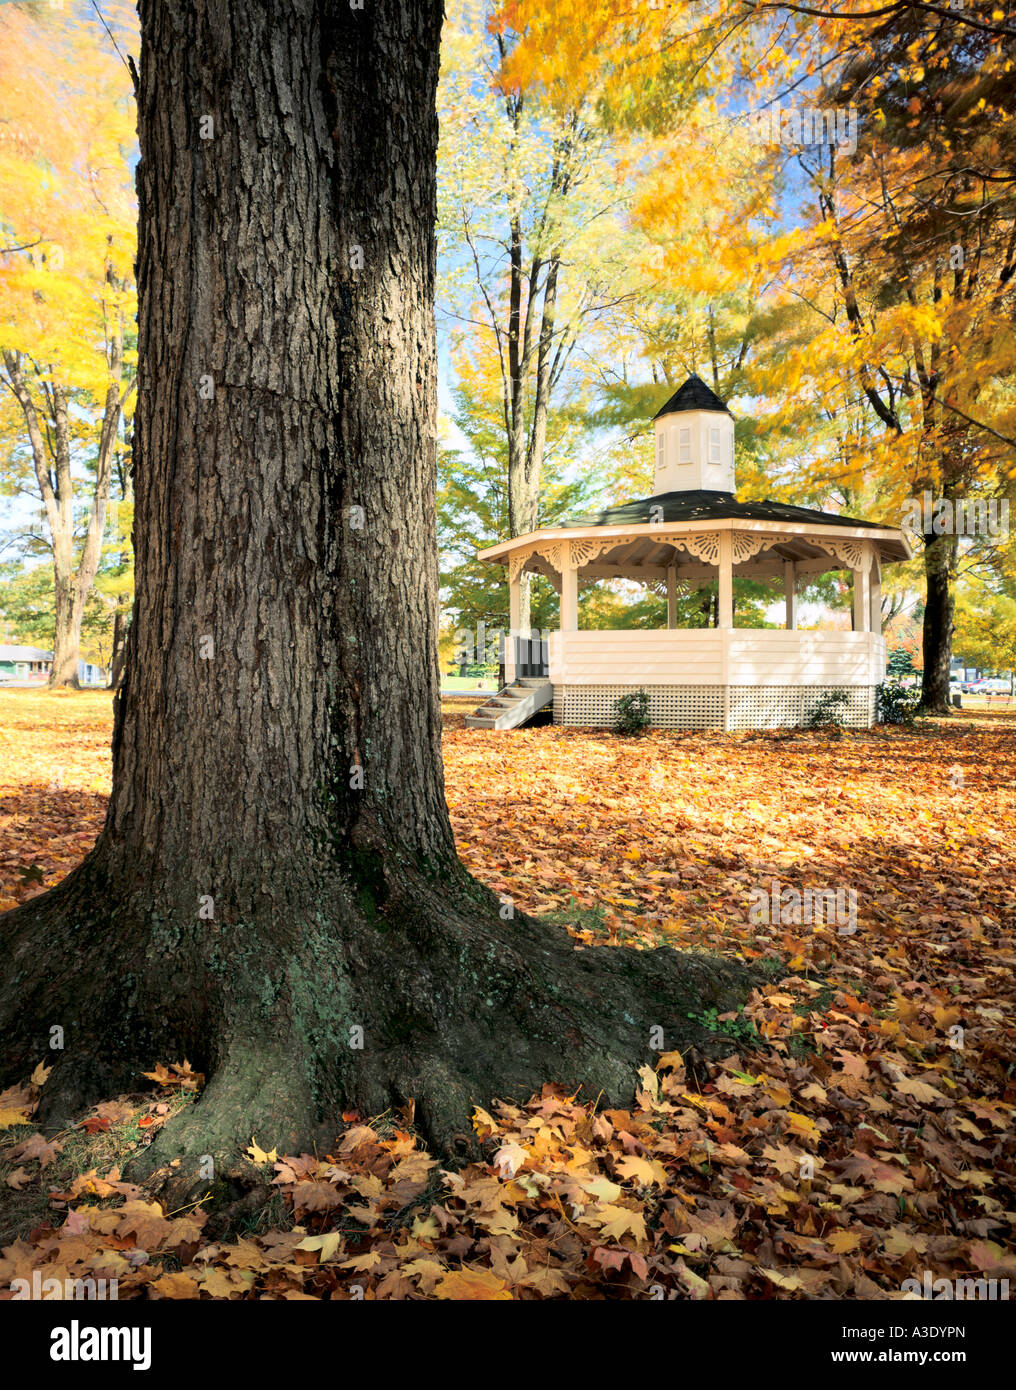 Bandstand & Maple Tree In Historic Town Of Waterford, Pennsylvania (Erie County), - Stock Image